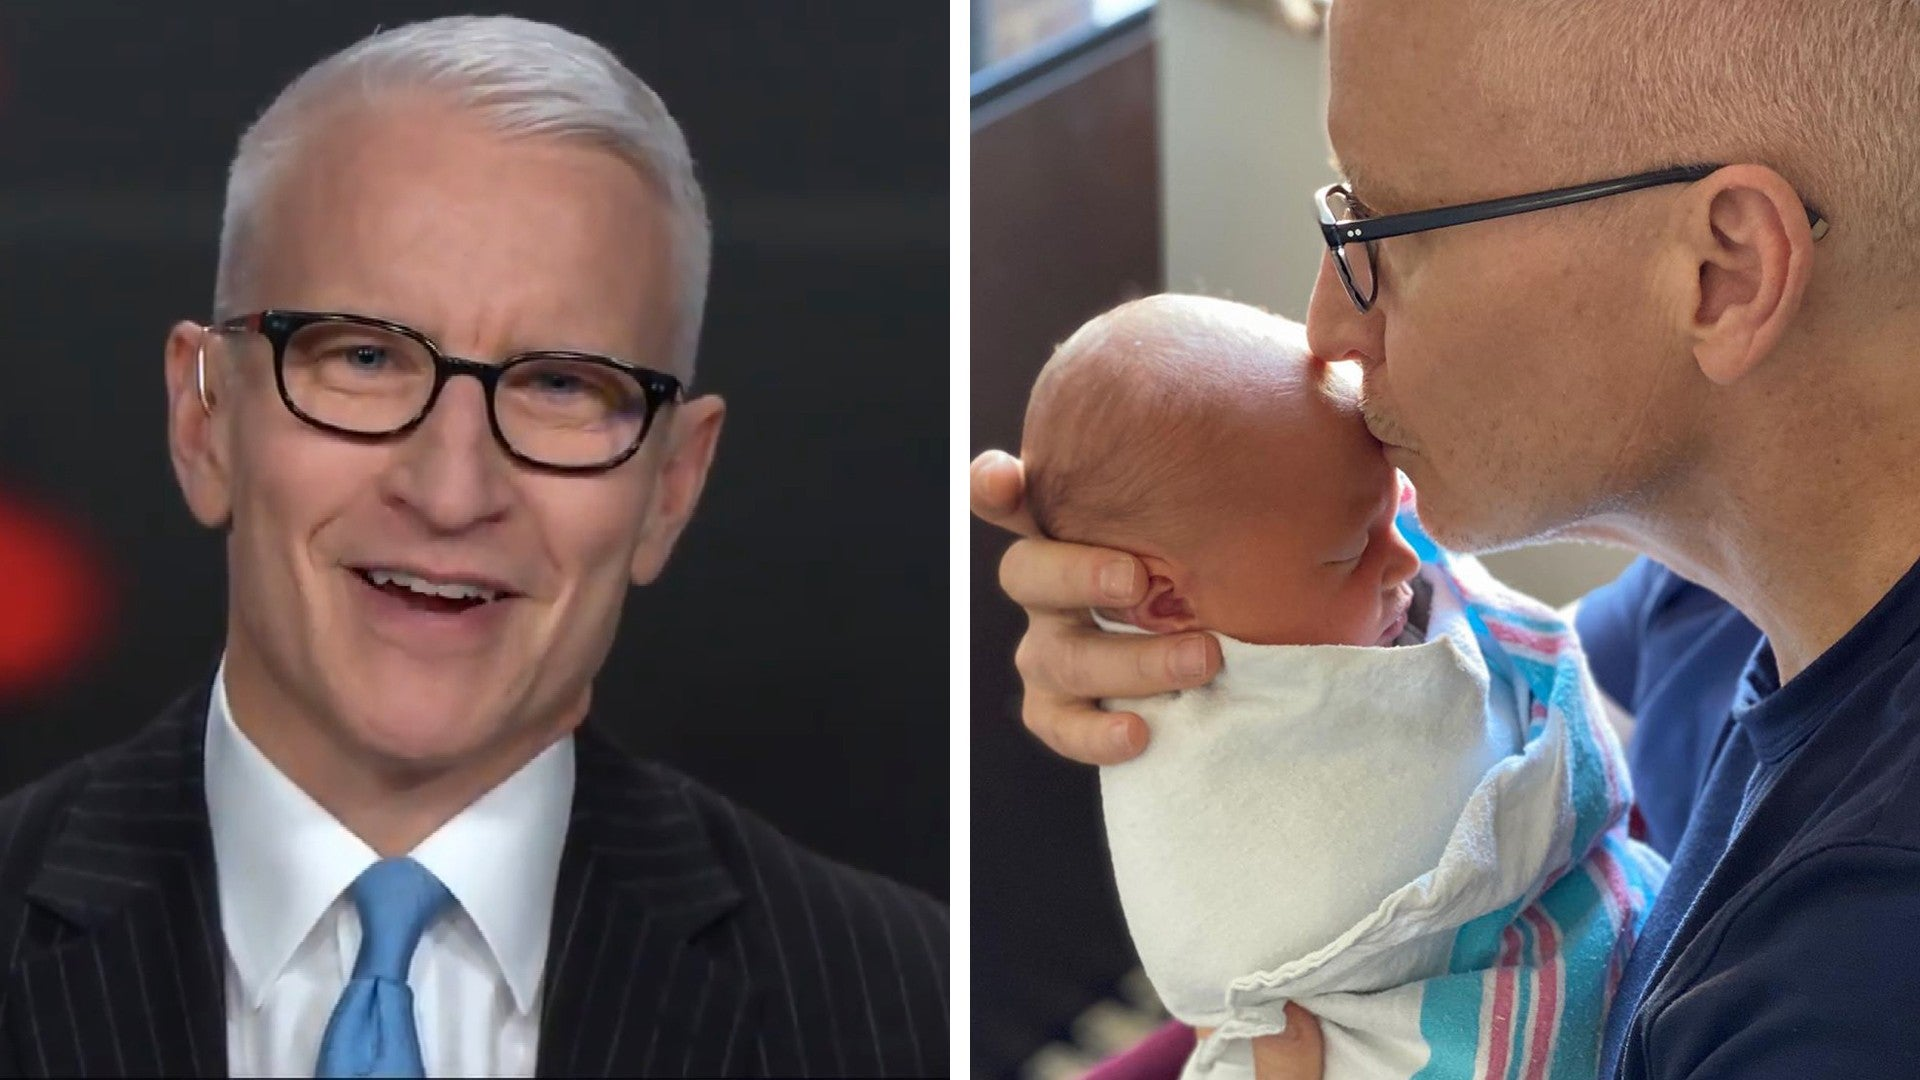 Anderson Cooper Instagram Announces Birth of His Son